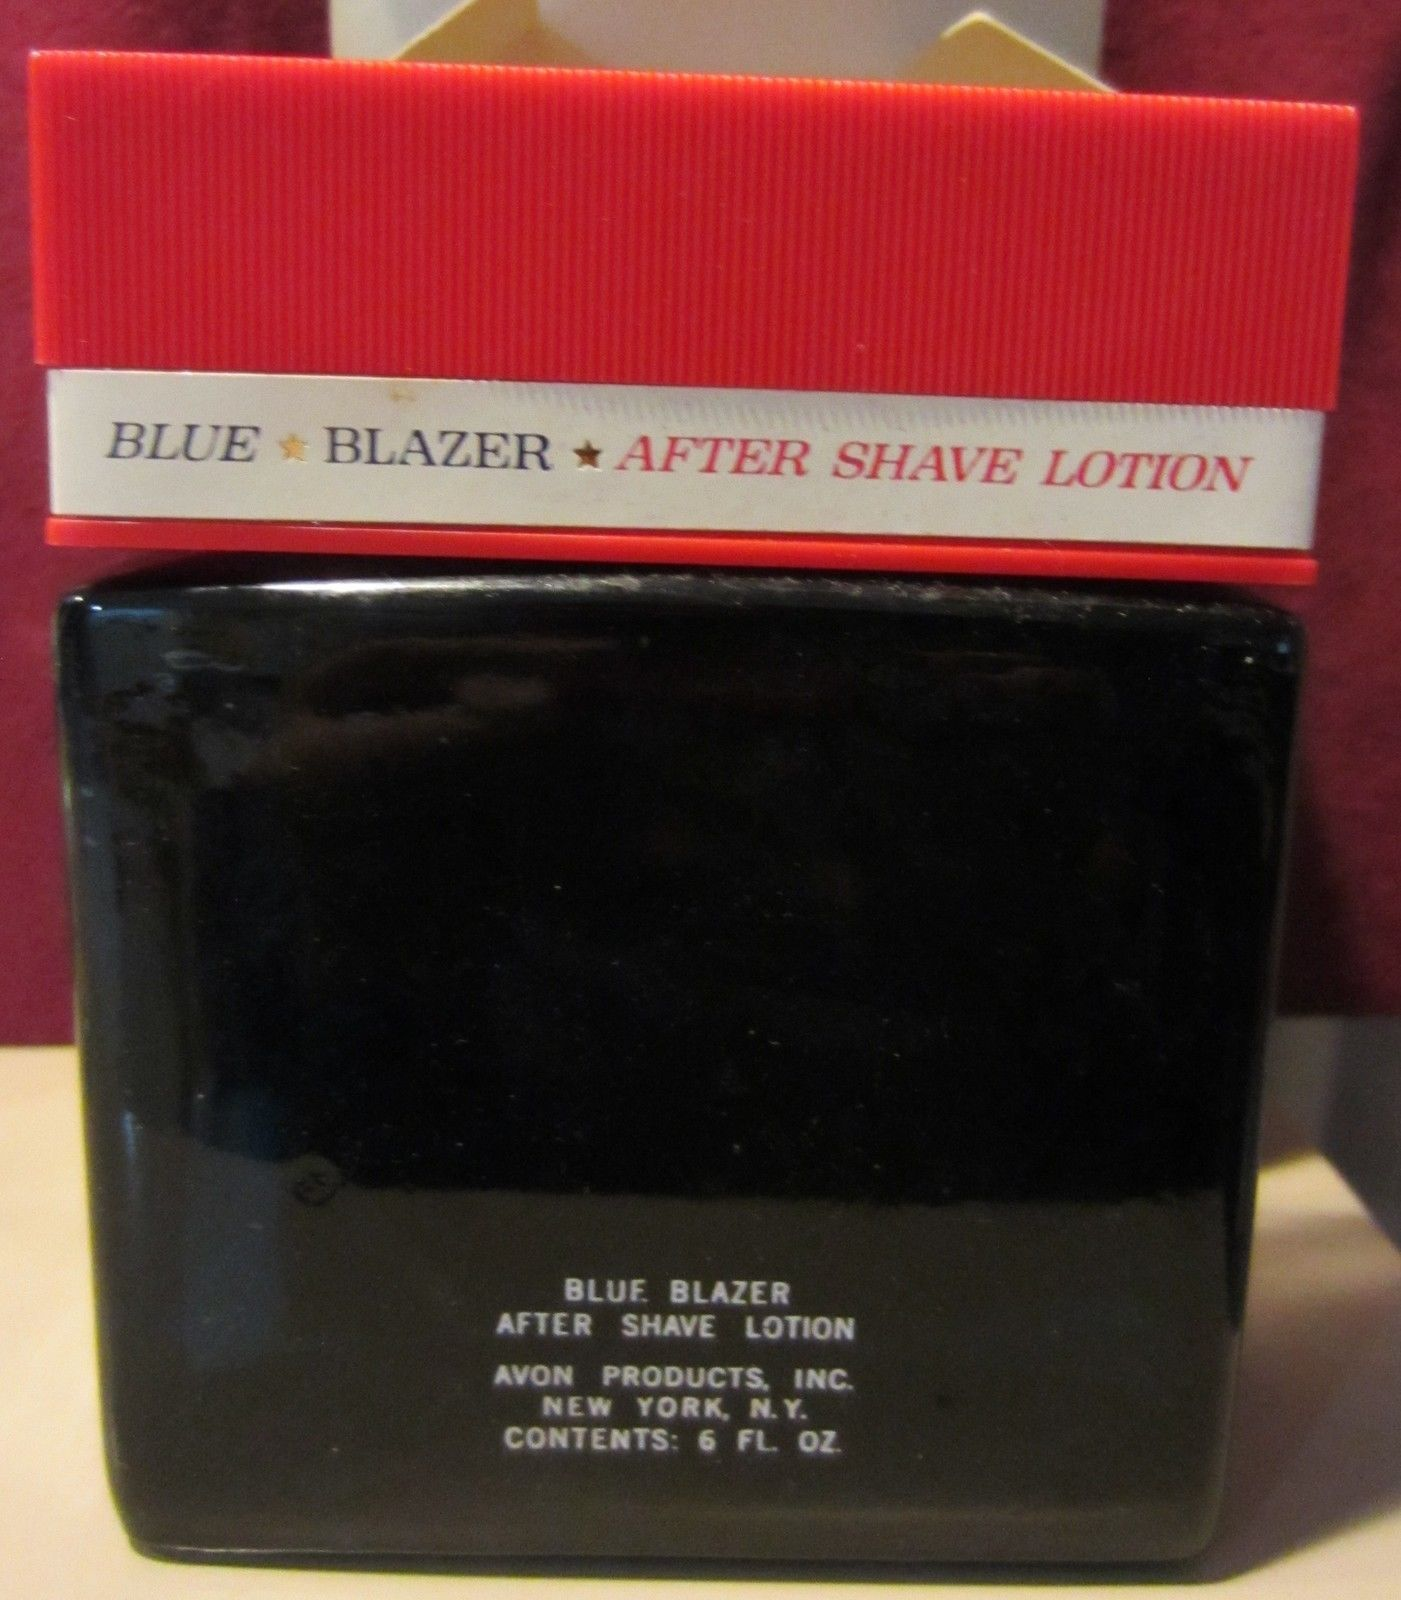 VINTAGE AVON  - BLUE BLAZER AFTER SHAVE LOTION  6 FL OZ